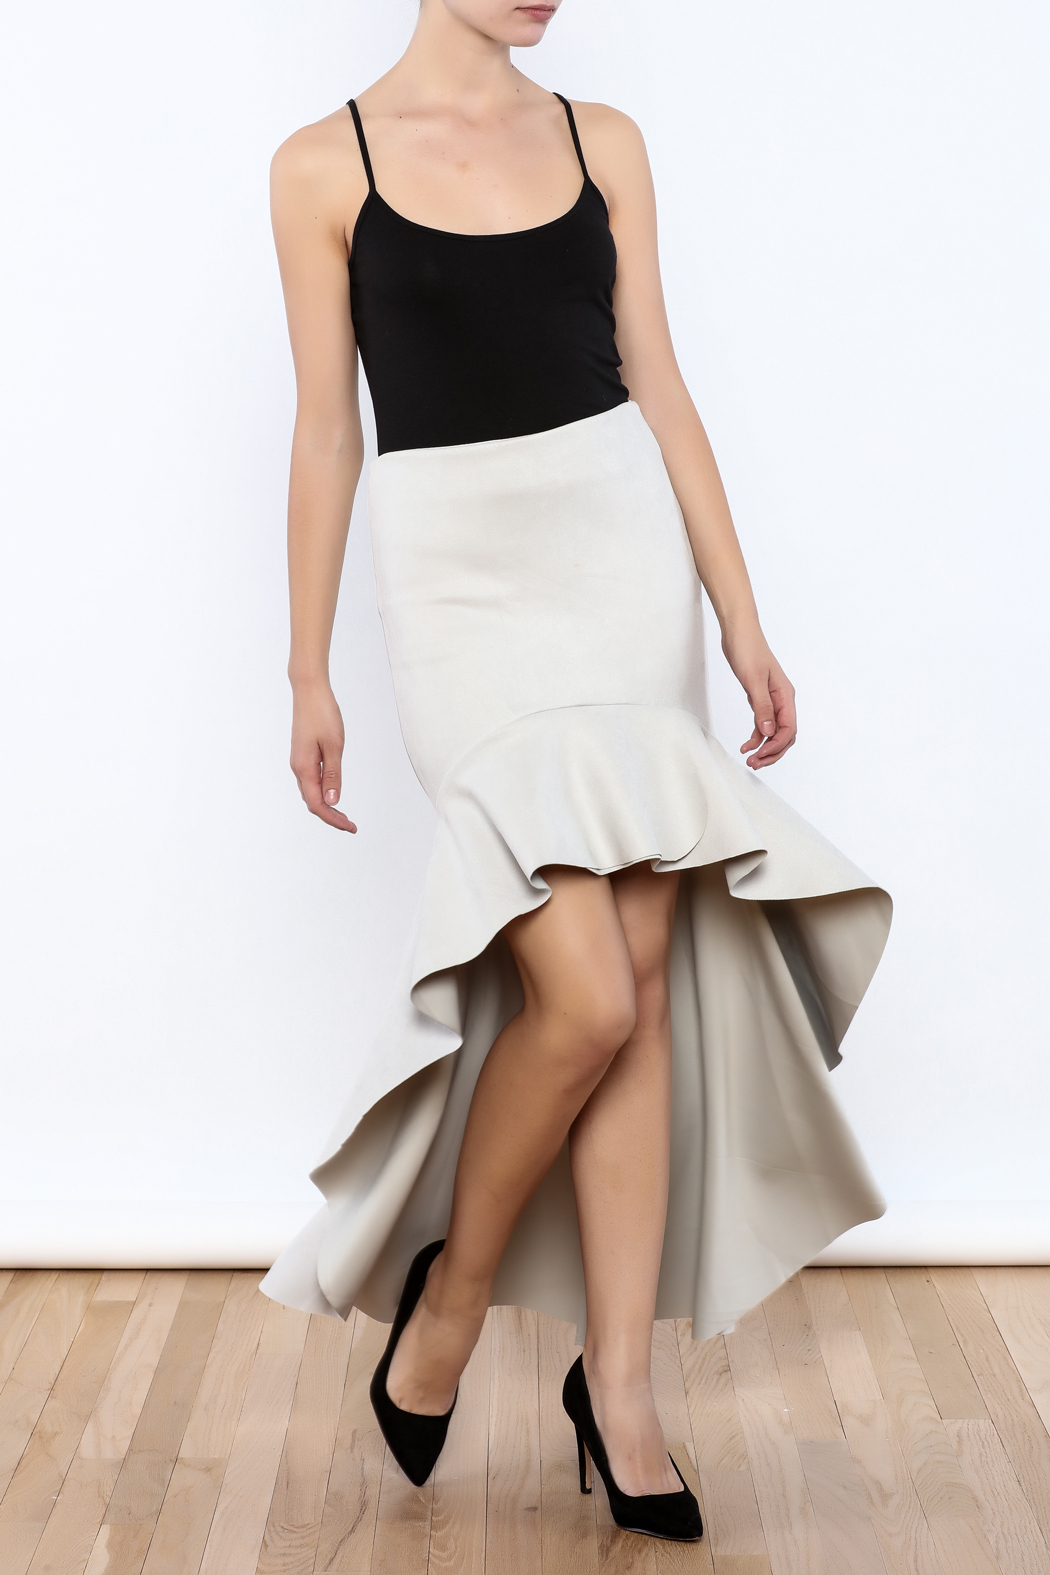 cq by cq Tango Skirt - Front Full Image